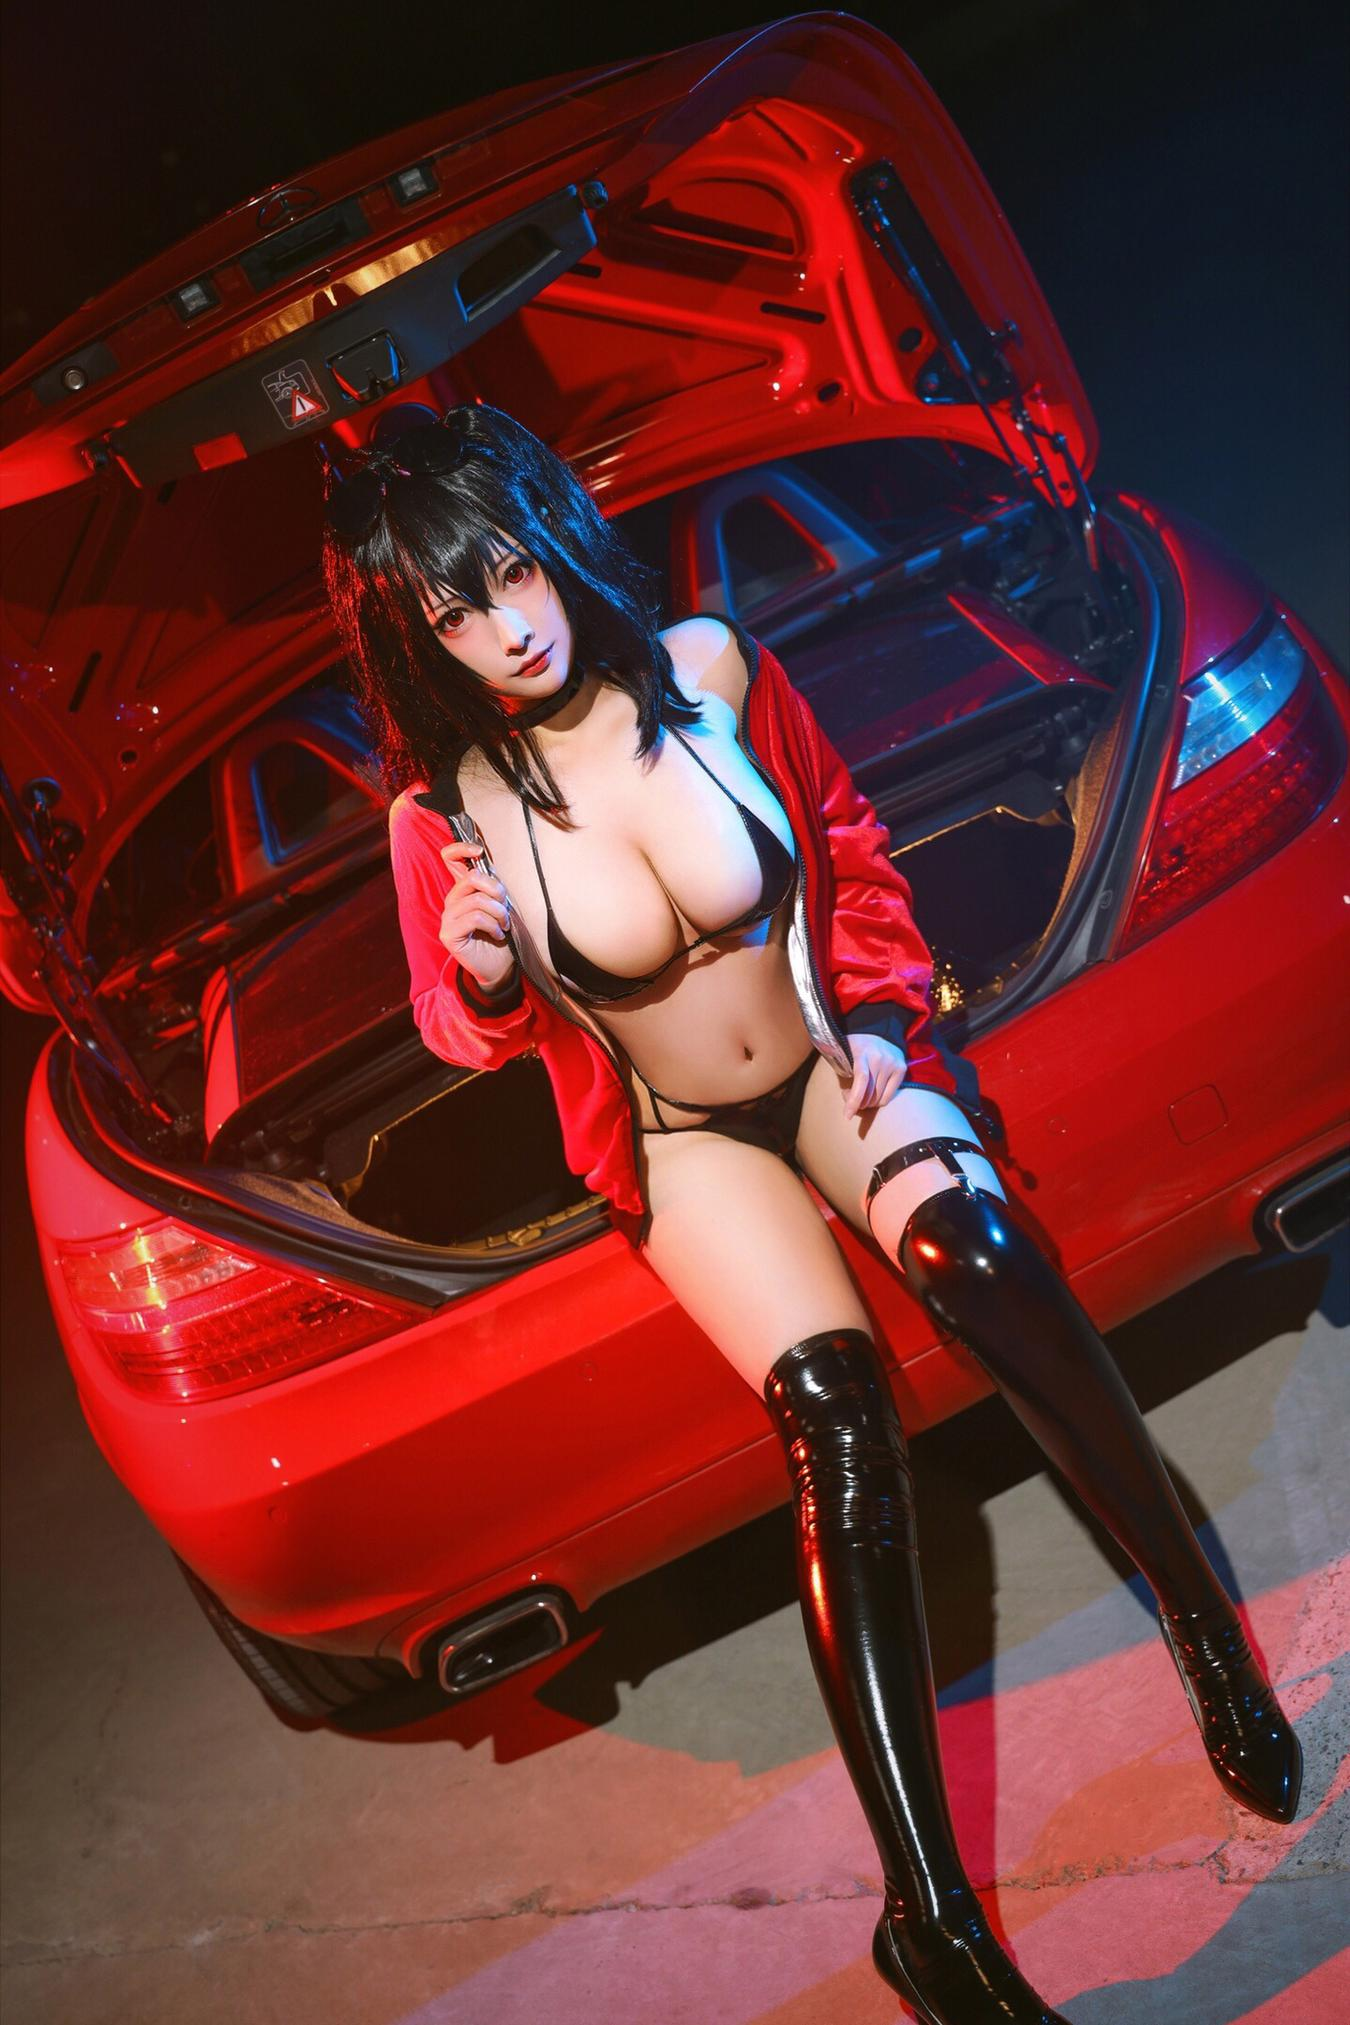 Picture with tags: HD, Cosplay, Interesting, Lingerie, Heels, Unknown model, Girl